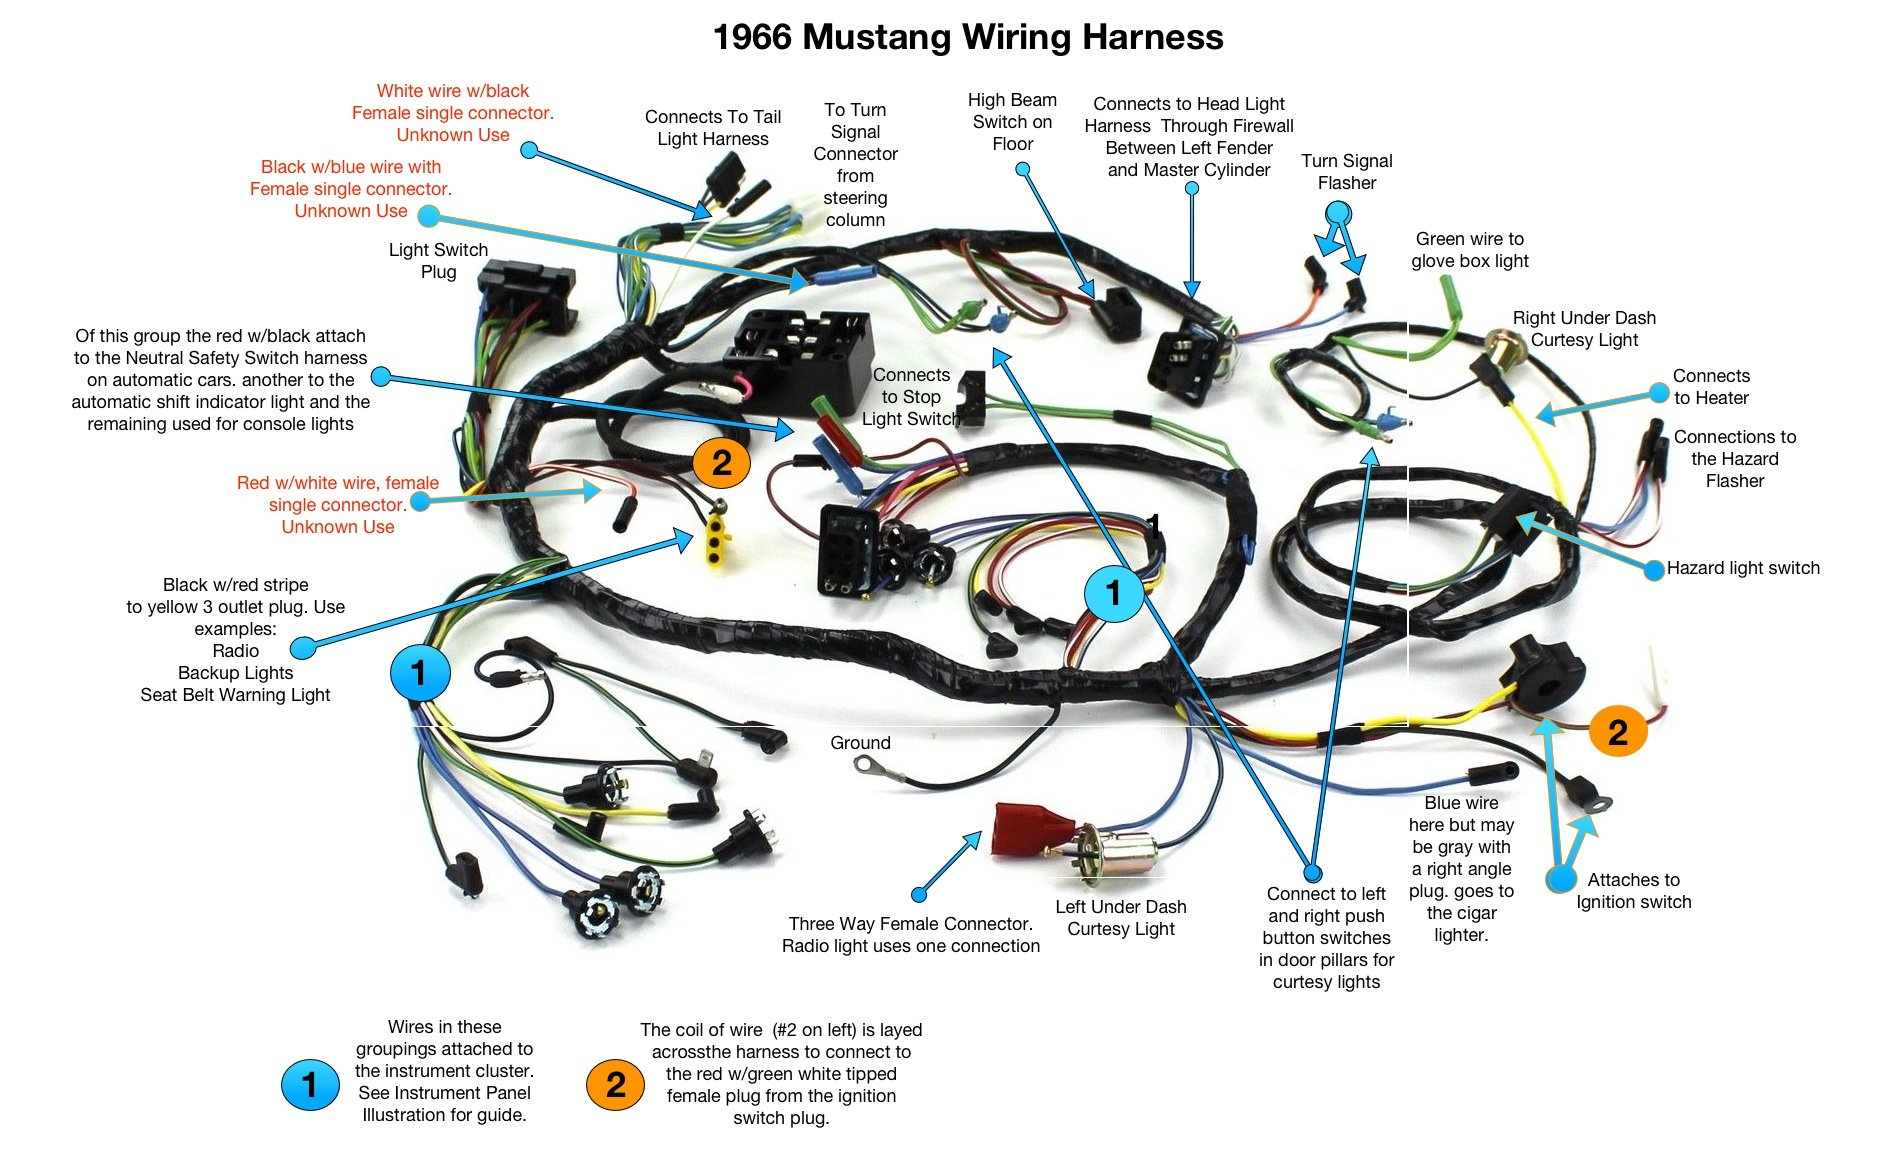 66 wiring harness diagram ford mustang forum. Black Bedroom Furniture Sets. Home Design Ideas